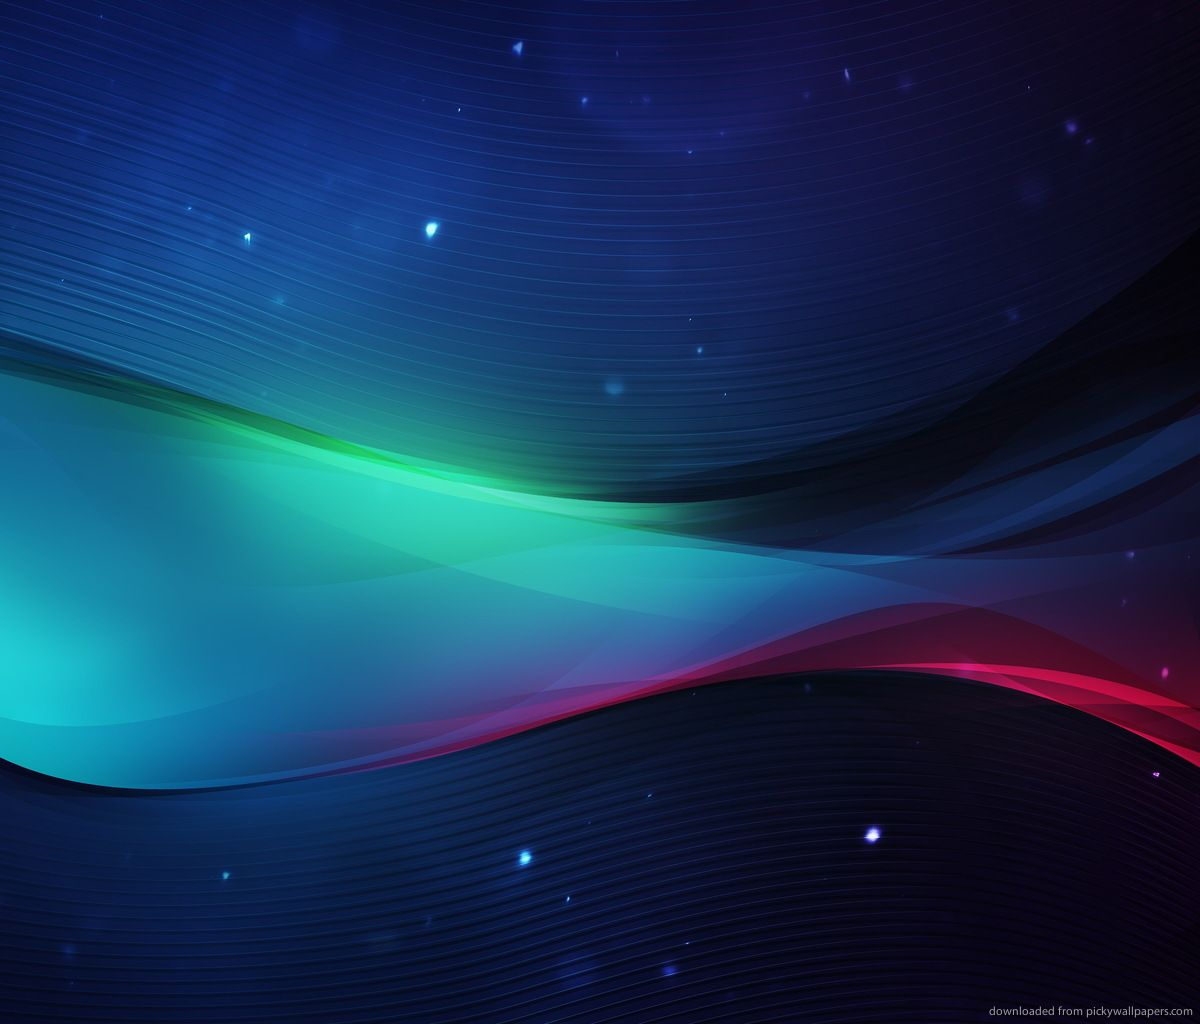 Samsung Galaxy Tablet Wallpapers Top Free Samsung Galaxy Tablet Backgrounds Wallpaperaccess